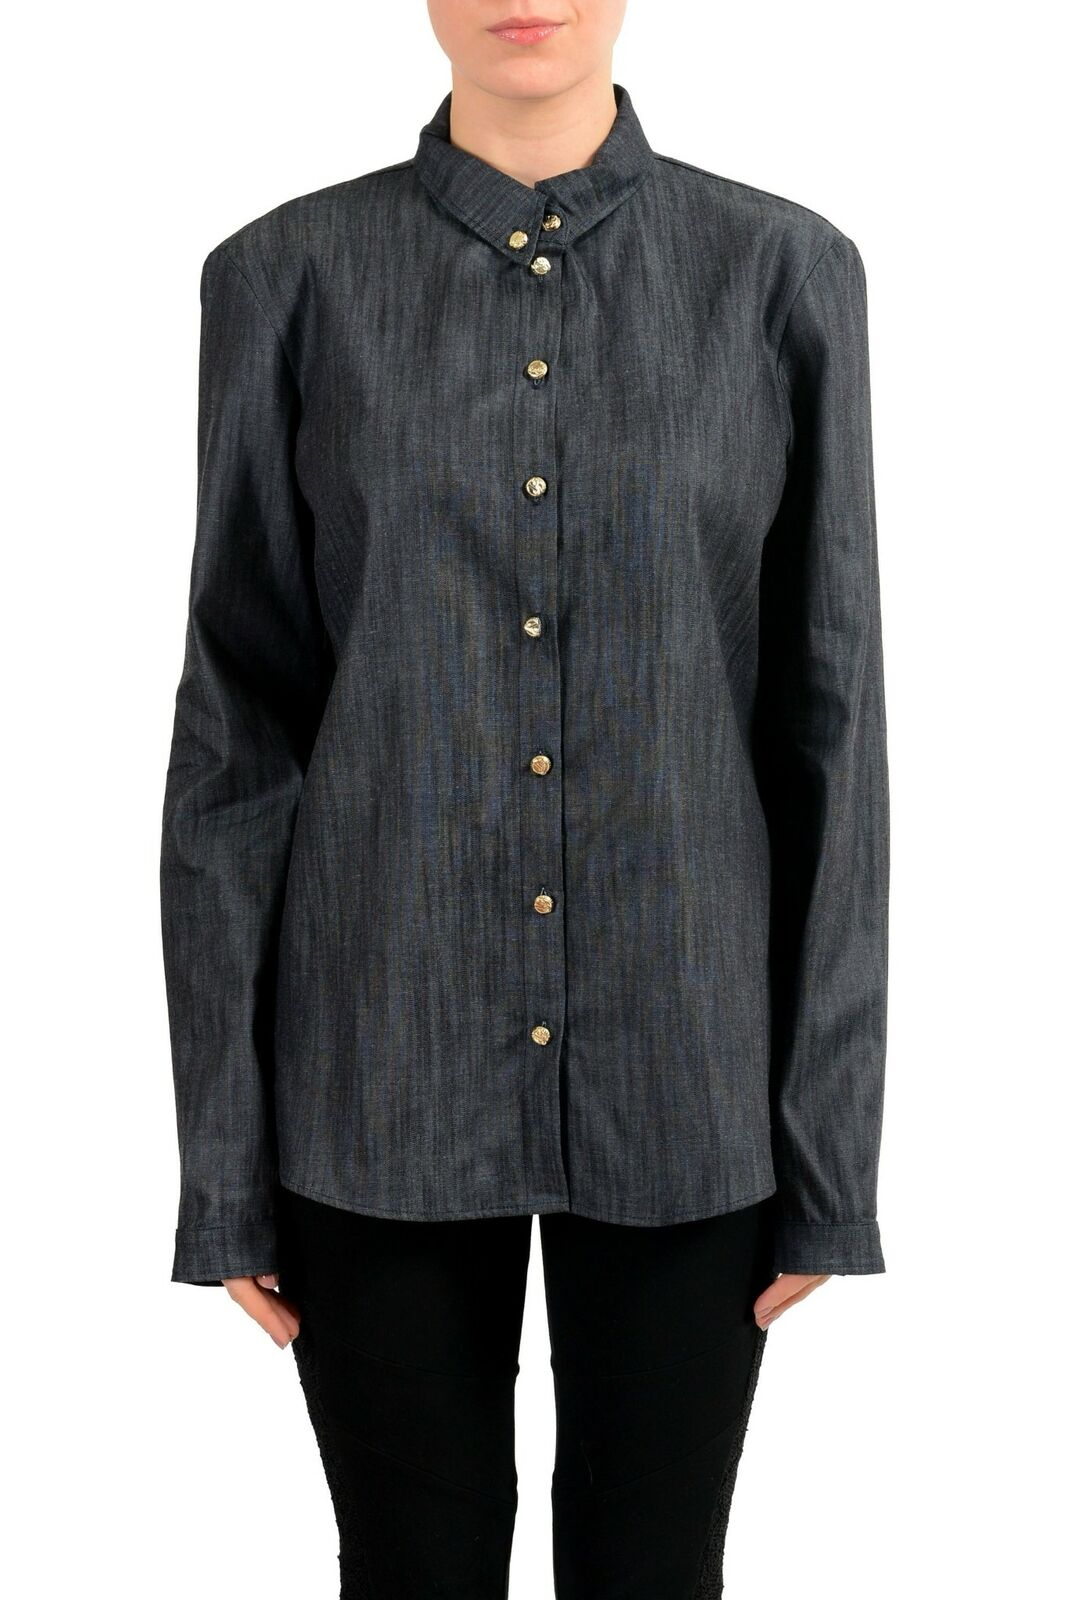 Versace Jeans bluee Button Down Denim Women's Shirt US 8 IT 44